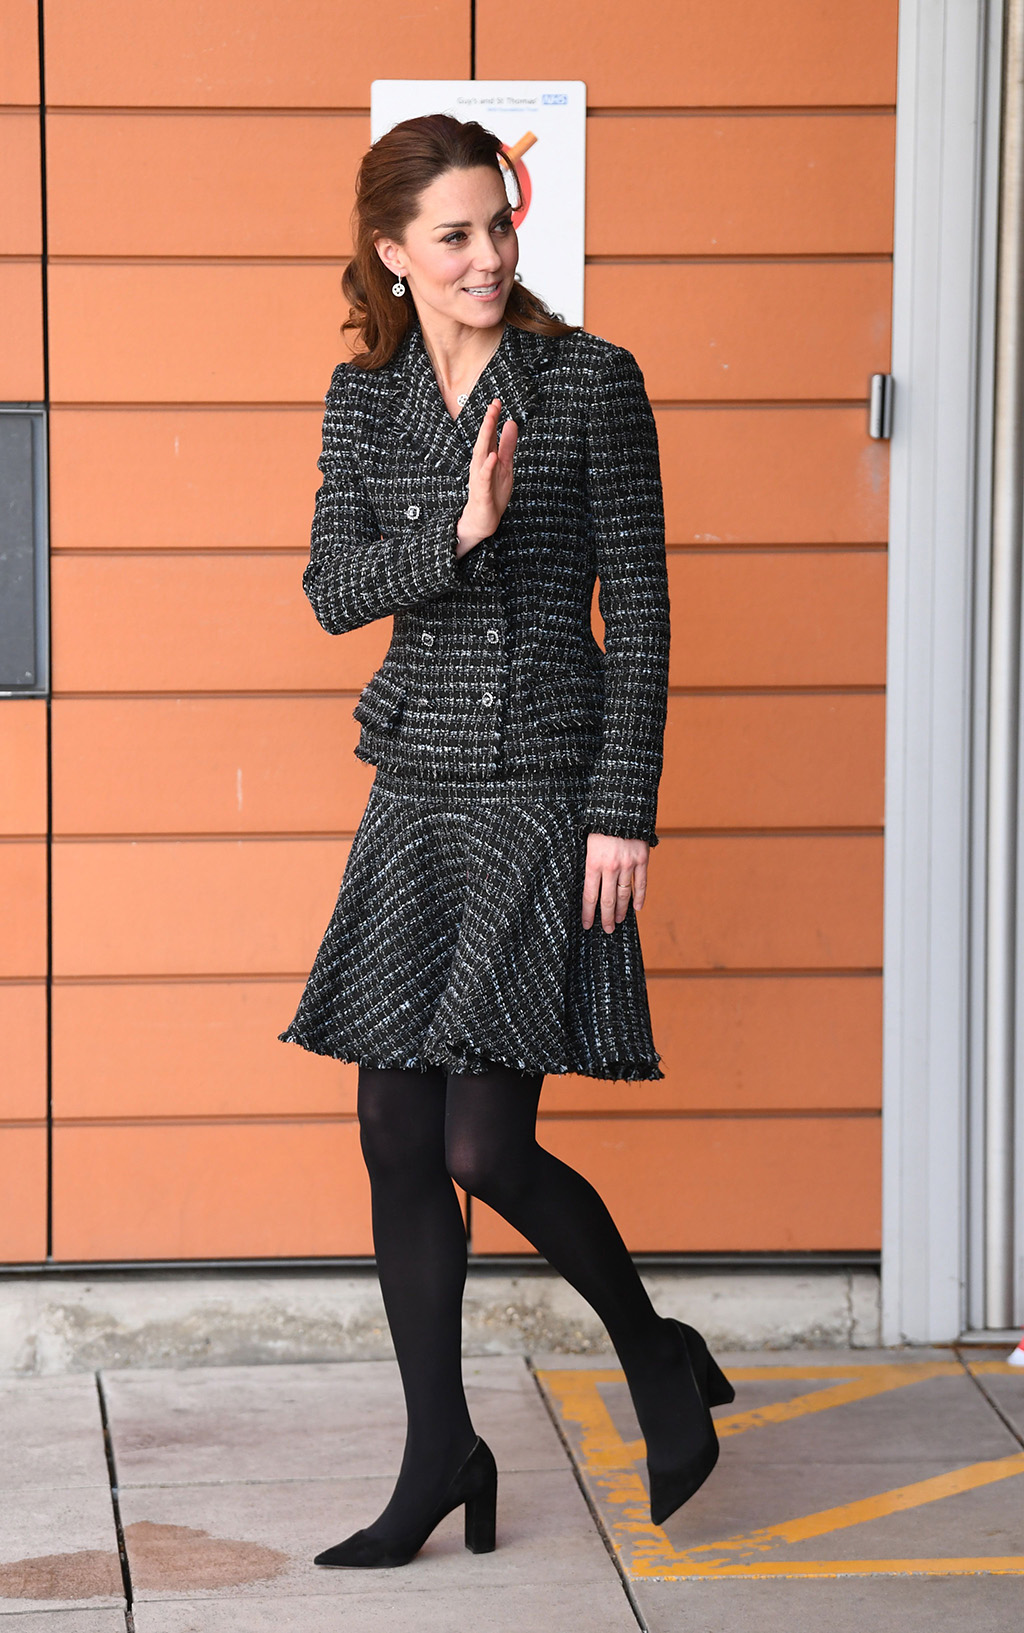 kate middleton, dolce and gabbana, skirt suit, gianvito rossi pumps, black tights, Catherine Duchess of Cambridge visits a National Portrait Gallery Workshop at Evelina London Children's HospitalCatherine Duchess of Cambridge visit to Evelina London Children's Hospital, UK - 28 Jan 2020The Duchess of Cambridge, Patron of Evelina London Children's Hospital and Patron of the National Portrait Gallery, will join a creative workshop run by the National Portrait Gallery's Hospital Programme at Evelina London on Tuesday 28th January to see how the creative arts can support children's health, wellbeing and happiness. The National Portrait Gallery works in close collaboration with play specialists from Evelina London to take artists into the hospital to deliver workshops to children of all ages, along with their siblings and parents. Activities take place on the ward or in play rooms. The Hospital Programme runs in three other children's hospitals in London – Great Ormond Street Hospital, Newham University Hospital and The Royal London Hospital in Whitechapel, working with nursing staff, hospital teachers and specialists. Over the past 15 years over 20,000 children (aged 0-18) have benefited from the creative workshops which include photography, animation, sculpture and textiles.Britain's Catherine, Duchess of Cambridge departs after an engagement at St. Thomas Hospital in London, Britain, 28 January 2020. She visited the Evelina London Children's Hospital which she is a patron of, to undertake a joint creative workshop with the National Portrait Gallery.Catherine, Duchess of Cambridge, London, United Kingdom - 28 Jan 2020